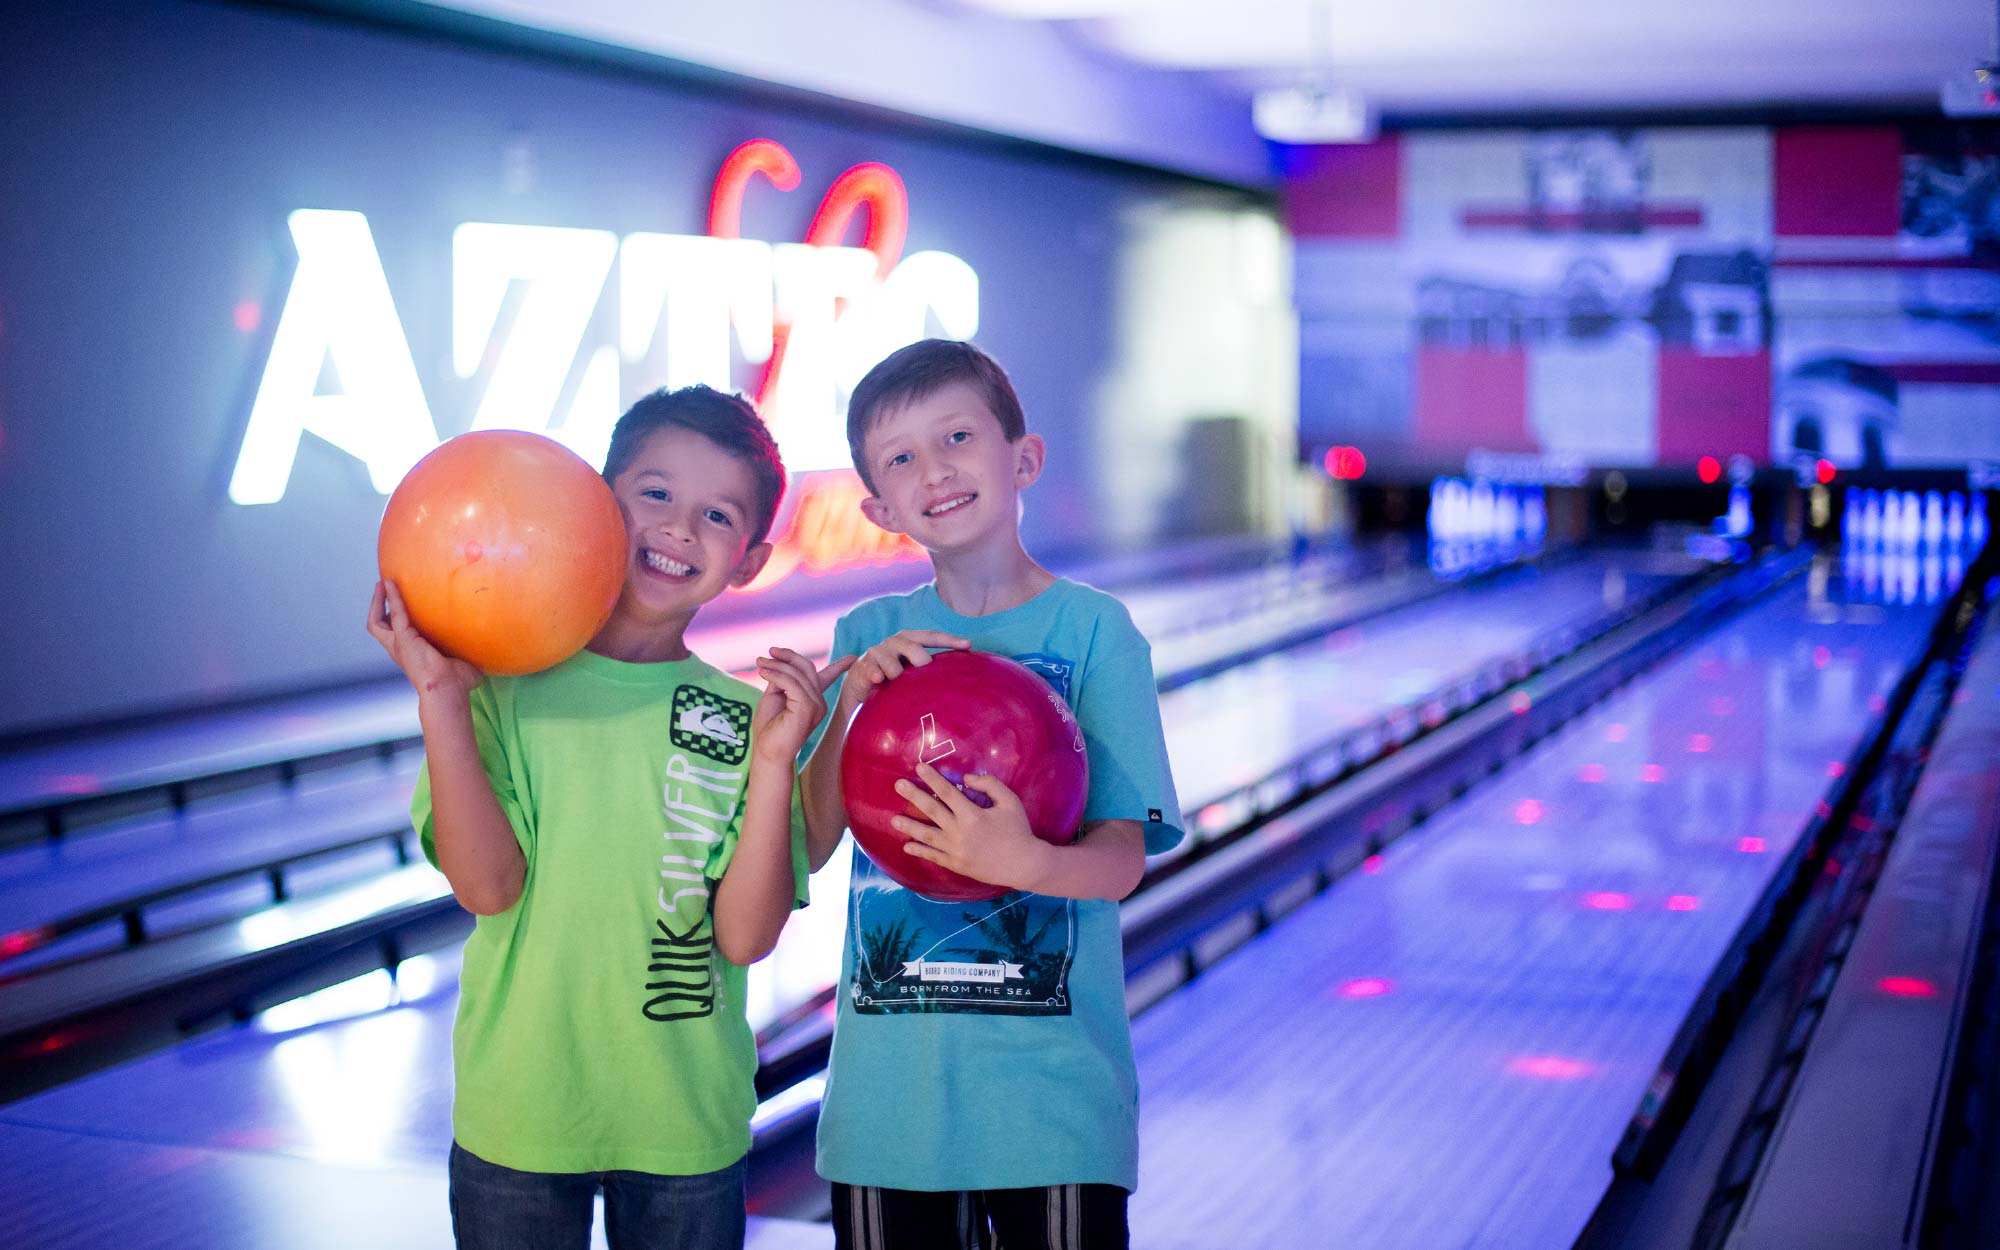 Two smiling boys holding bowling balls at Aztec Lanes